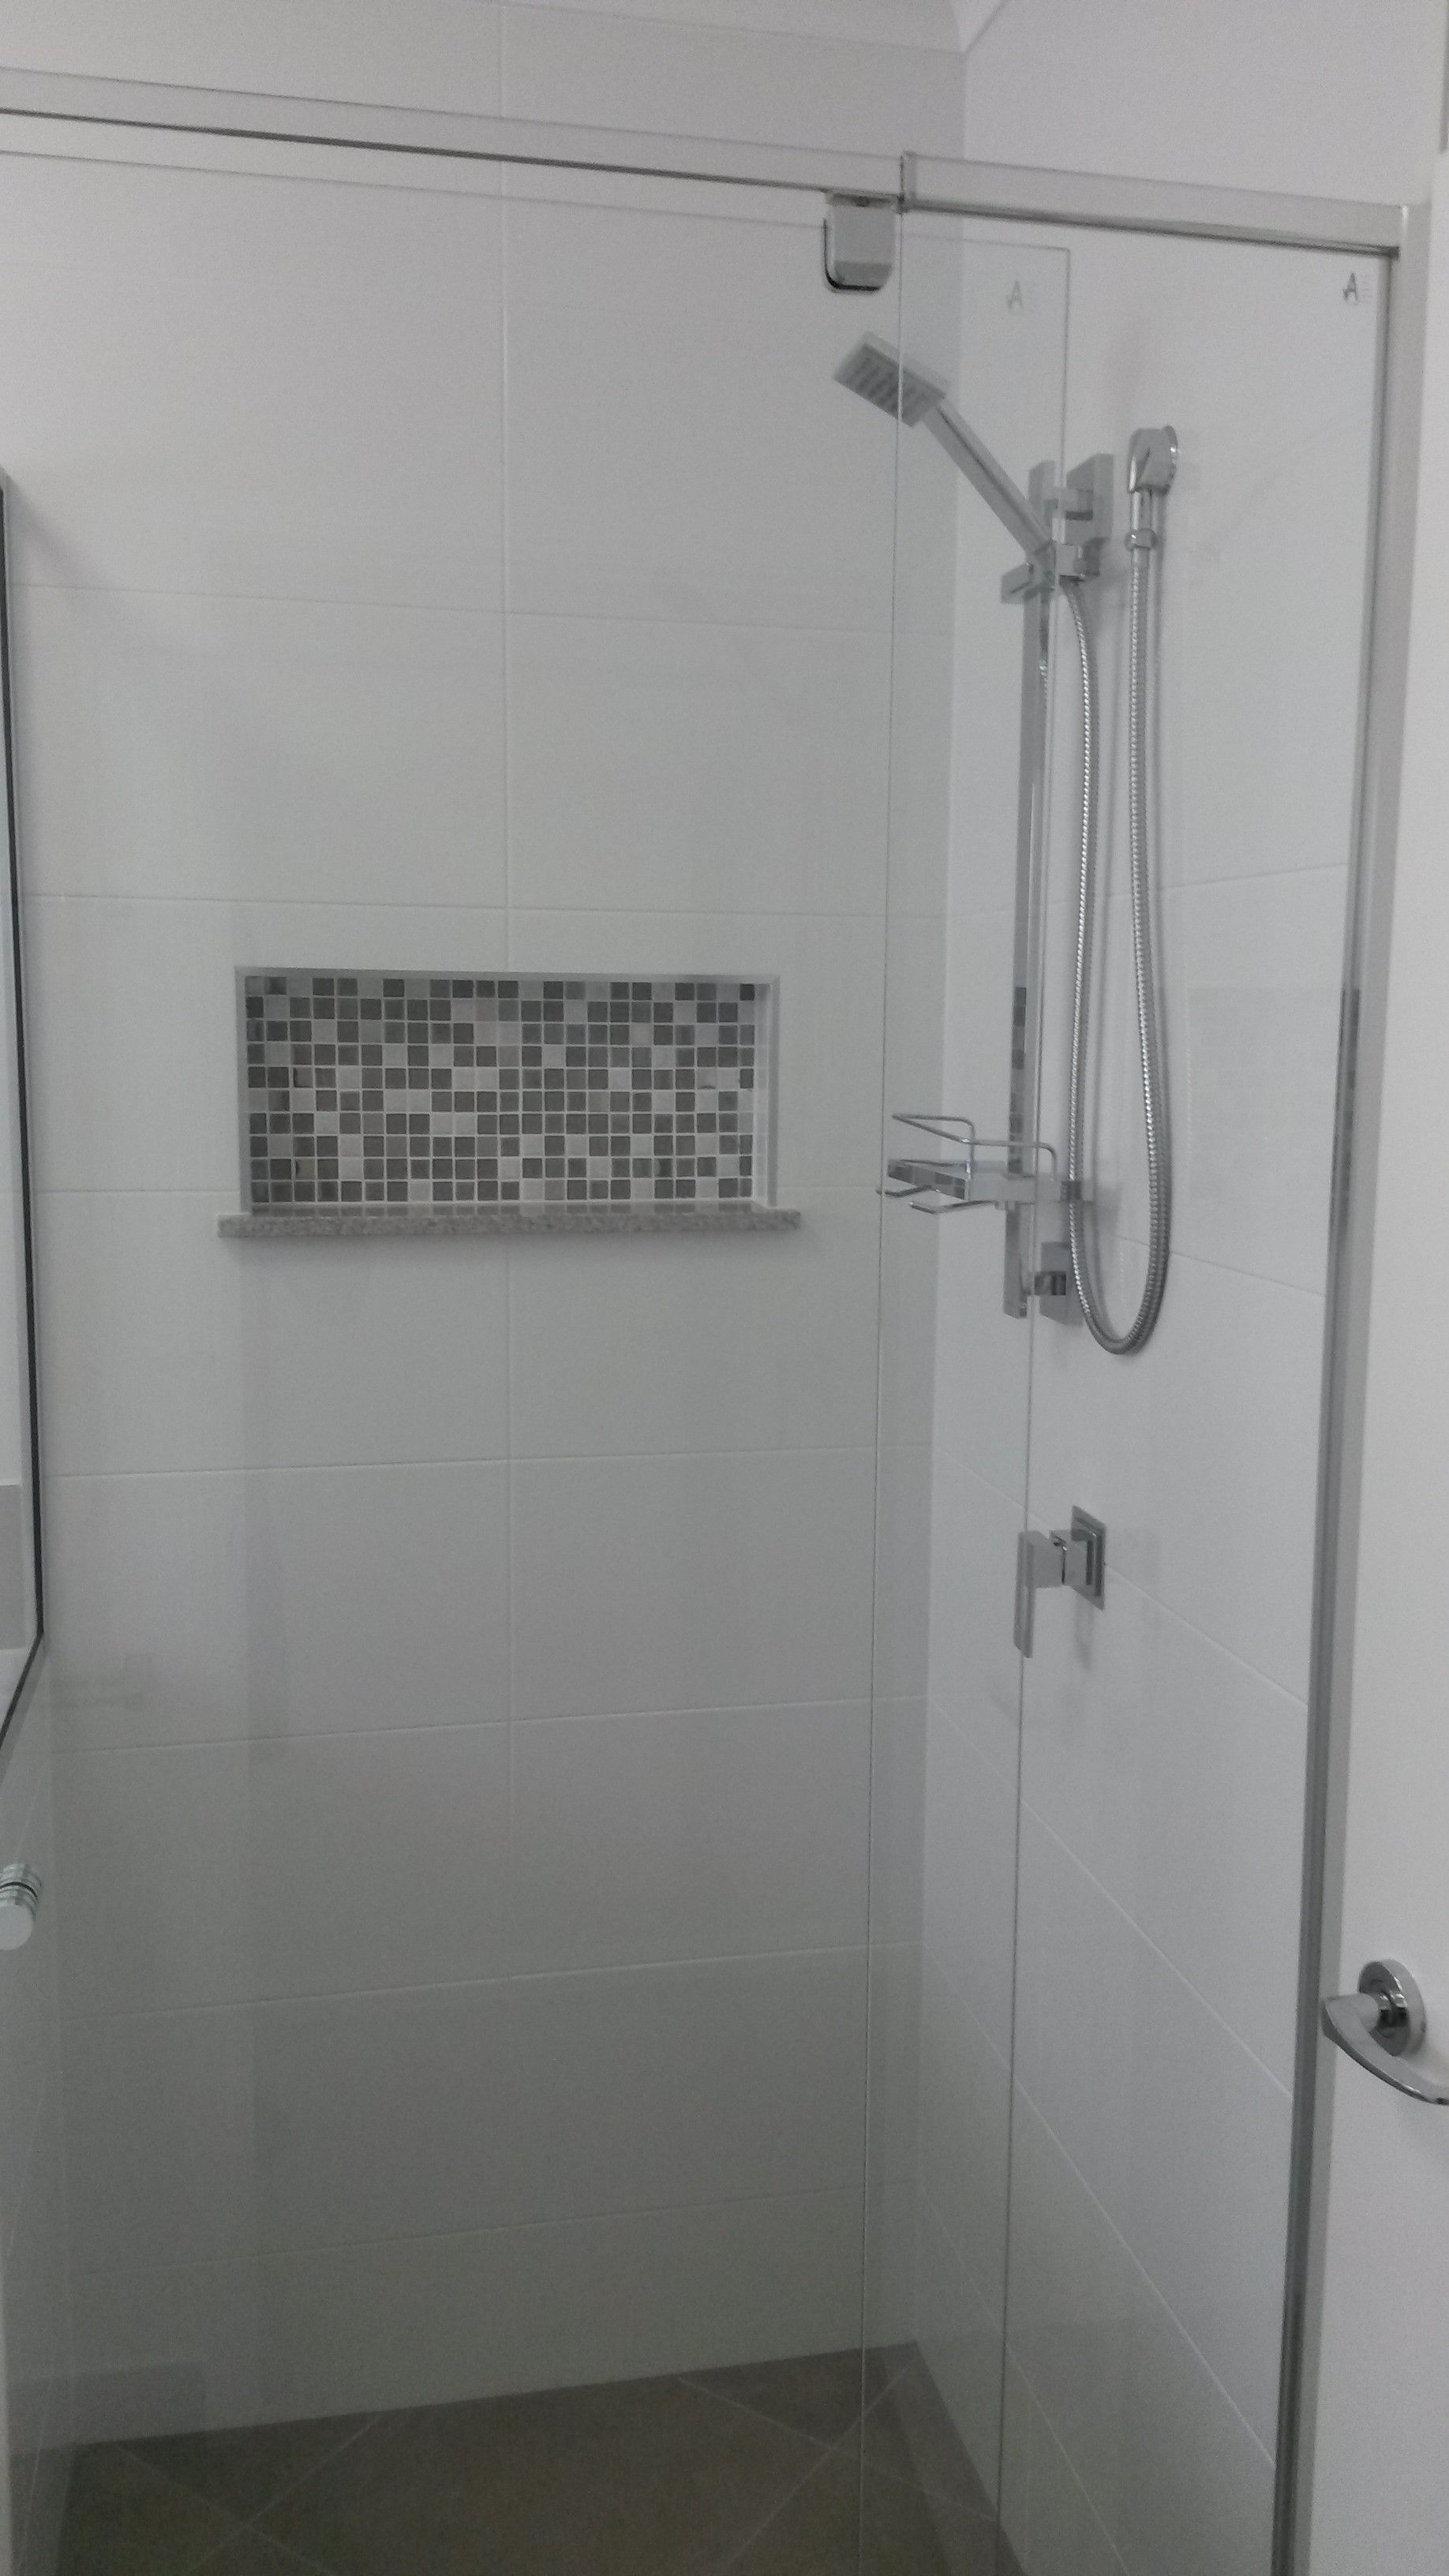 Bathroom Tiles Queensland feature tile to shower niche in bathroom. house builtgrady